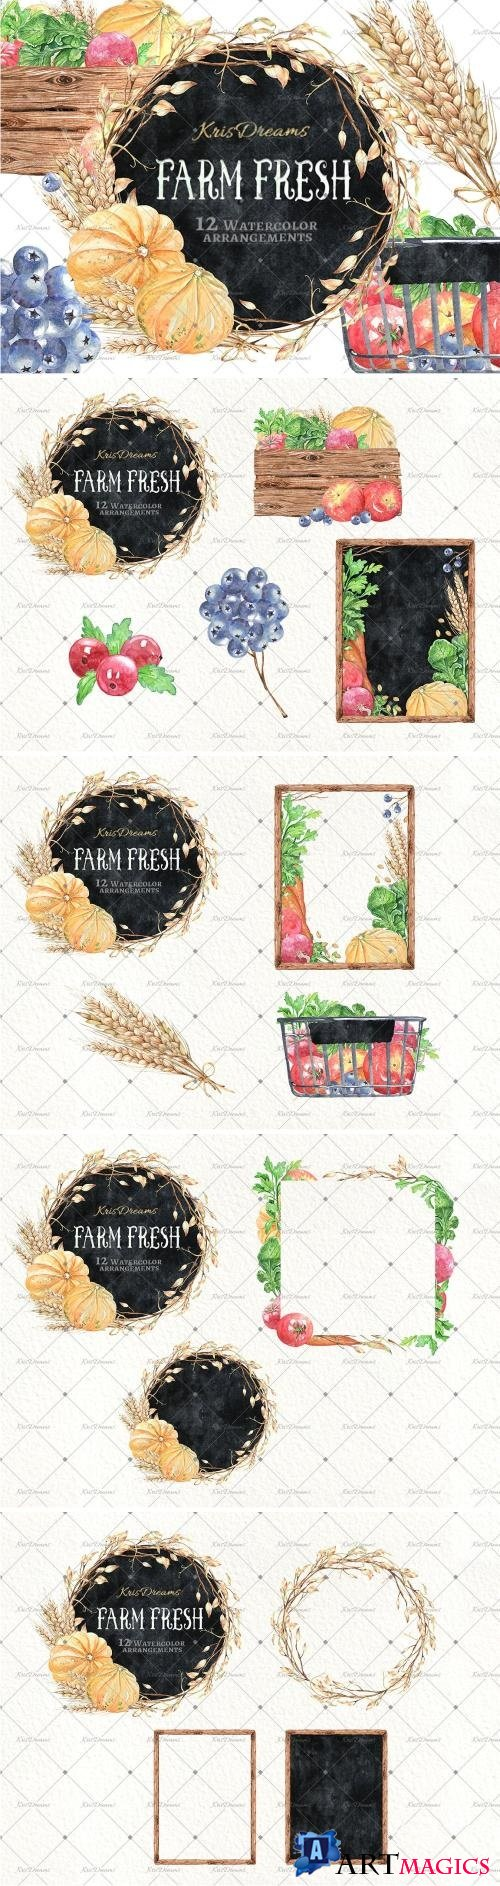 Farm Fresh Watercolor Arrangements - 2038758